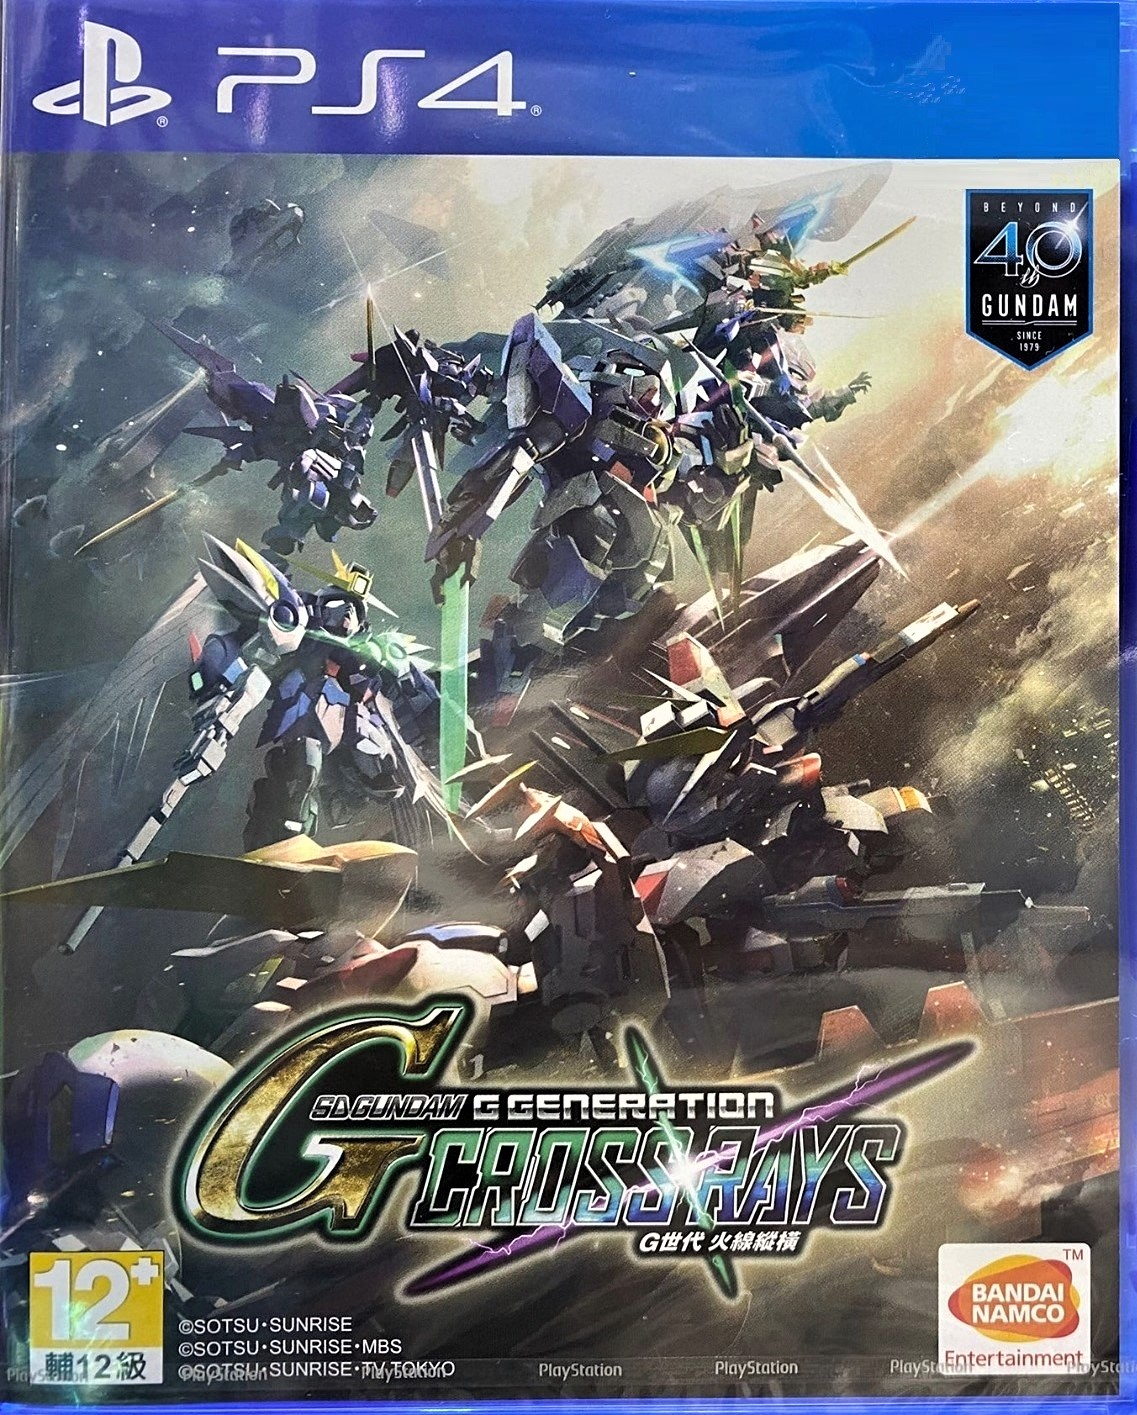 Bandai Namco PS4 SD Gundam G Generation Crossrays 中文版